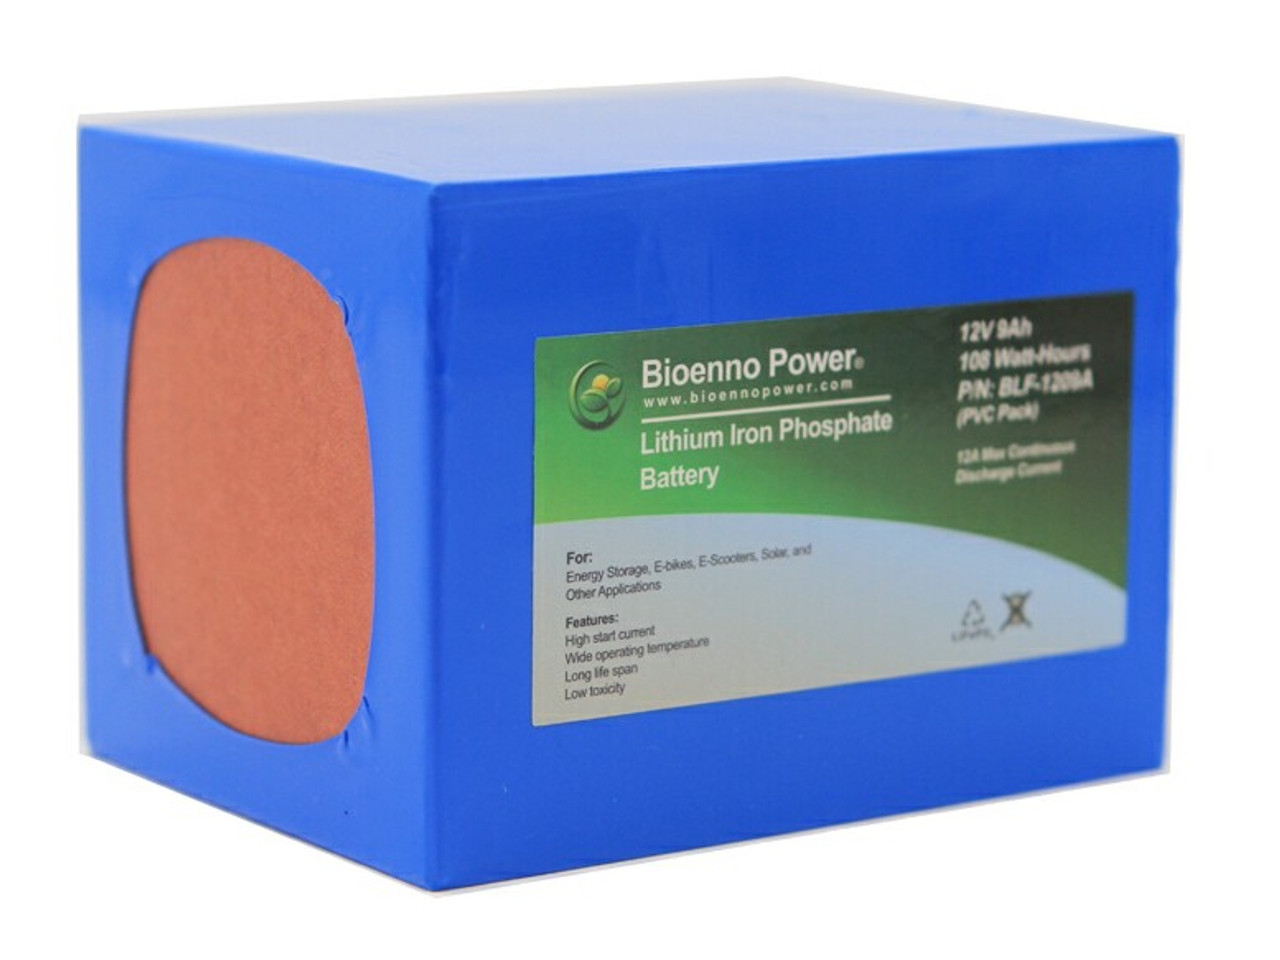 Bioenno Power 12 Volt, 9 Amp Hour Lithium Iron Phosphate Battery